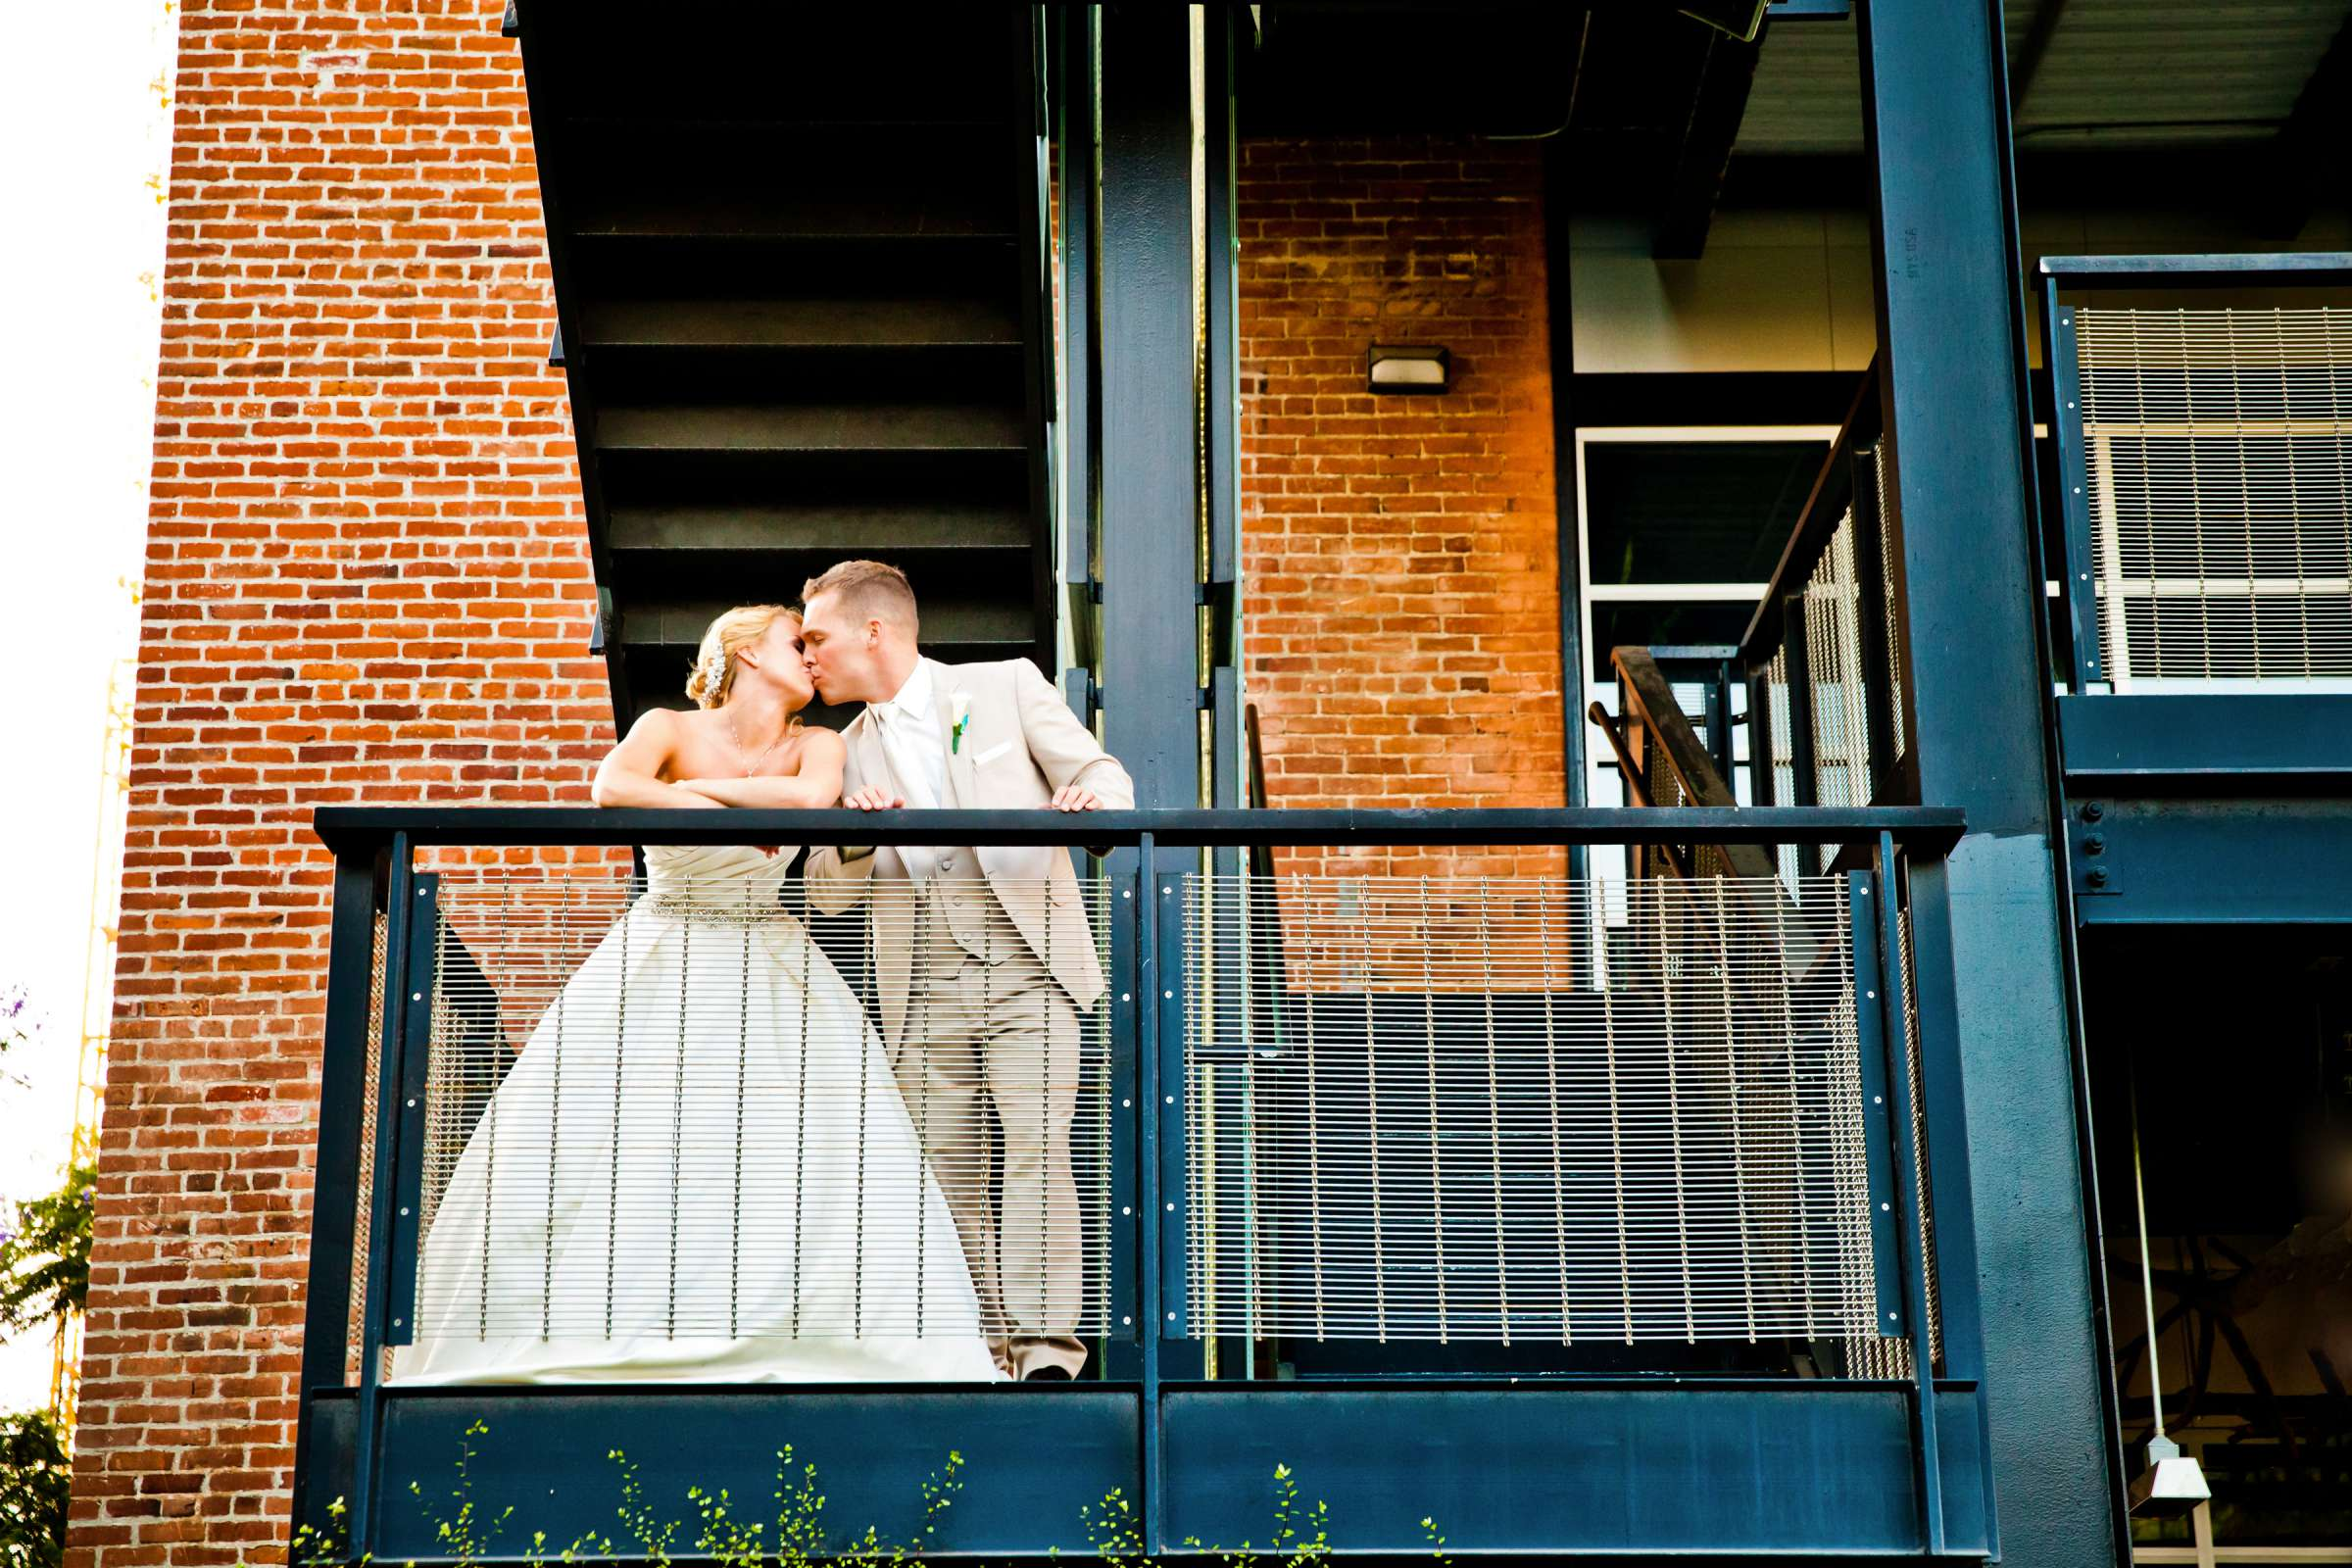 Ultimate Skybox Wedding, Kelly and Daniel Wedding Photo #13 by True Photography